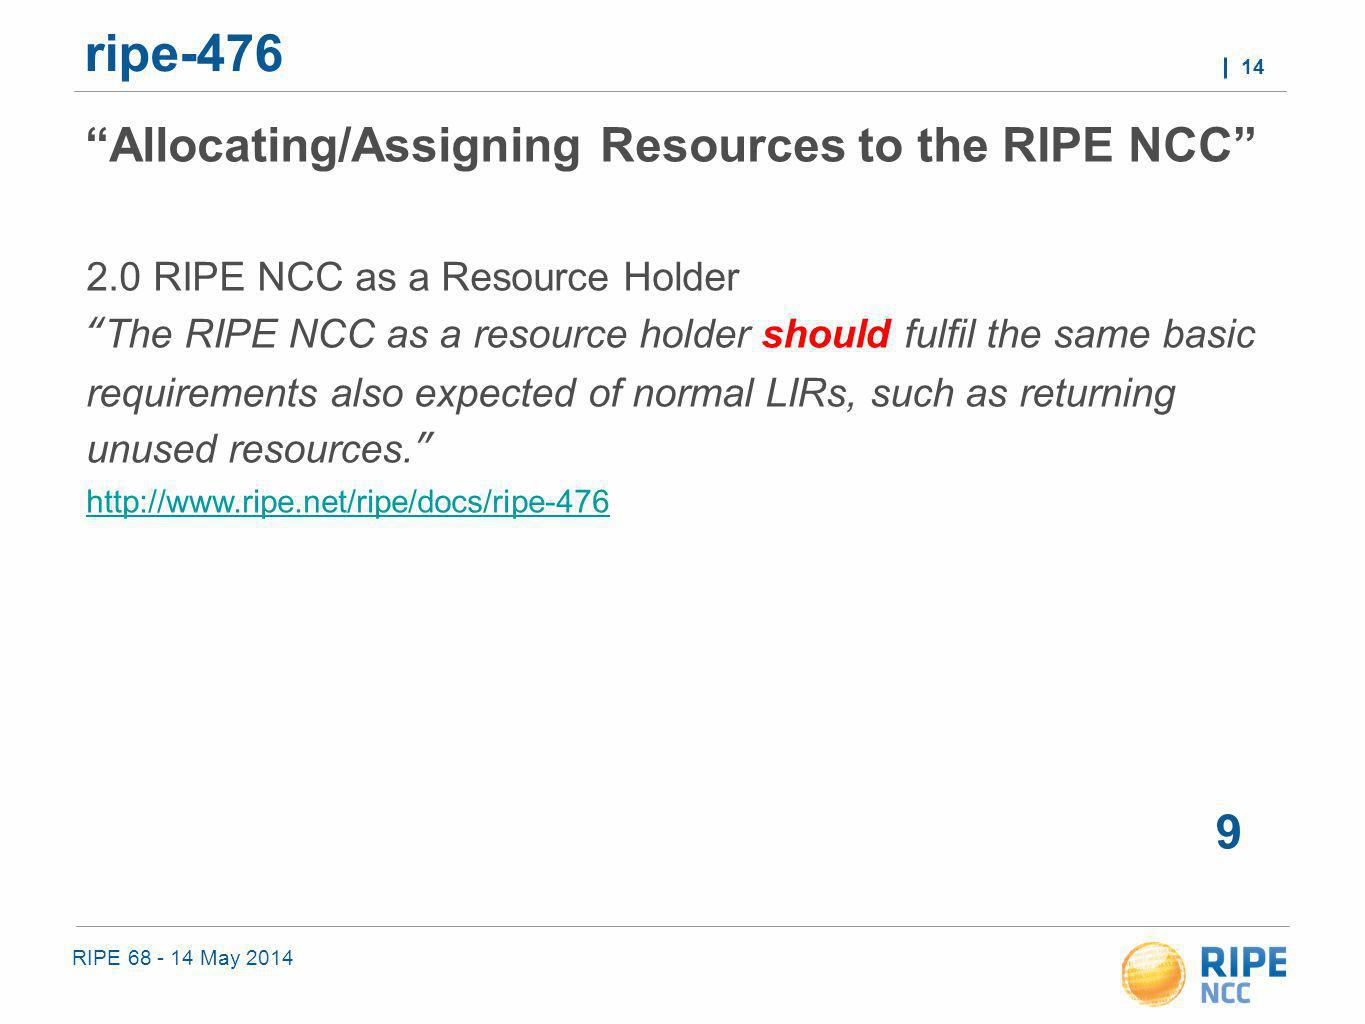 RIPE 68 - 14 May 2014 14 ripe-476 9 Allocating/Assigning Resources to the RIPE NCC 2.0 RIPE NCC as a Resource Holder The RIPE NCC as a resource holder should fulfil the same basic requirements also expected of normal LIRs, such as returning unused resources. http://www.ripe.net/ripe/docs/ripe-476 http://www.ripe.net/ripe/docs/ripe-476